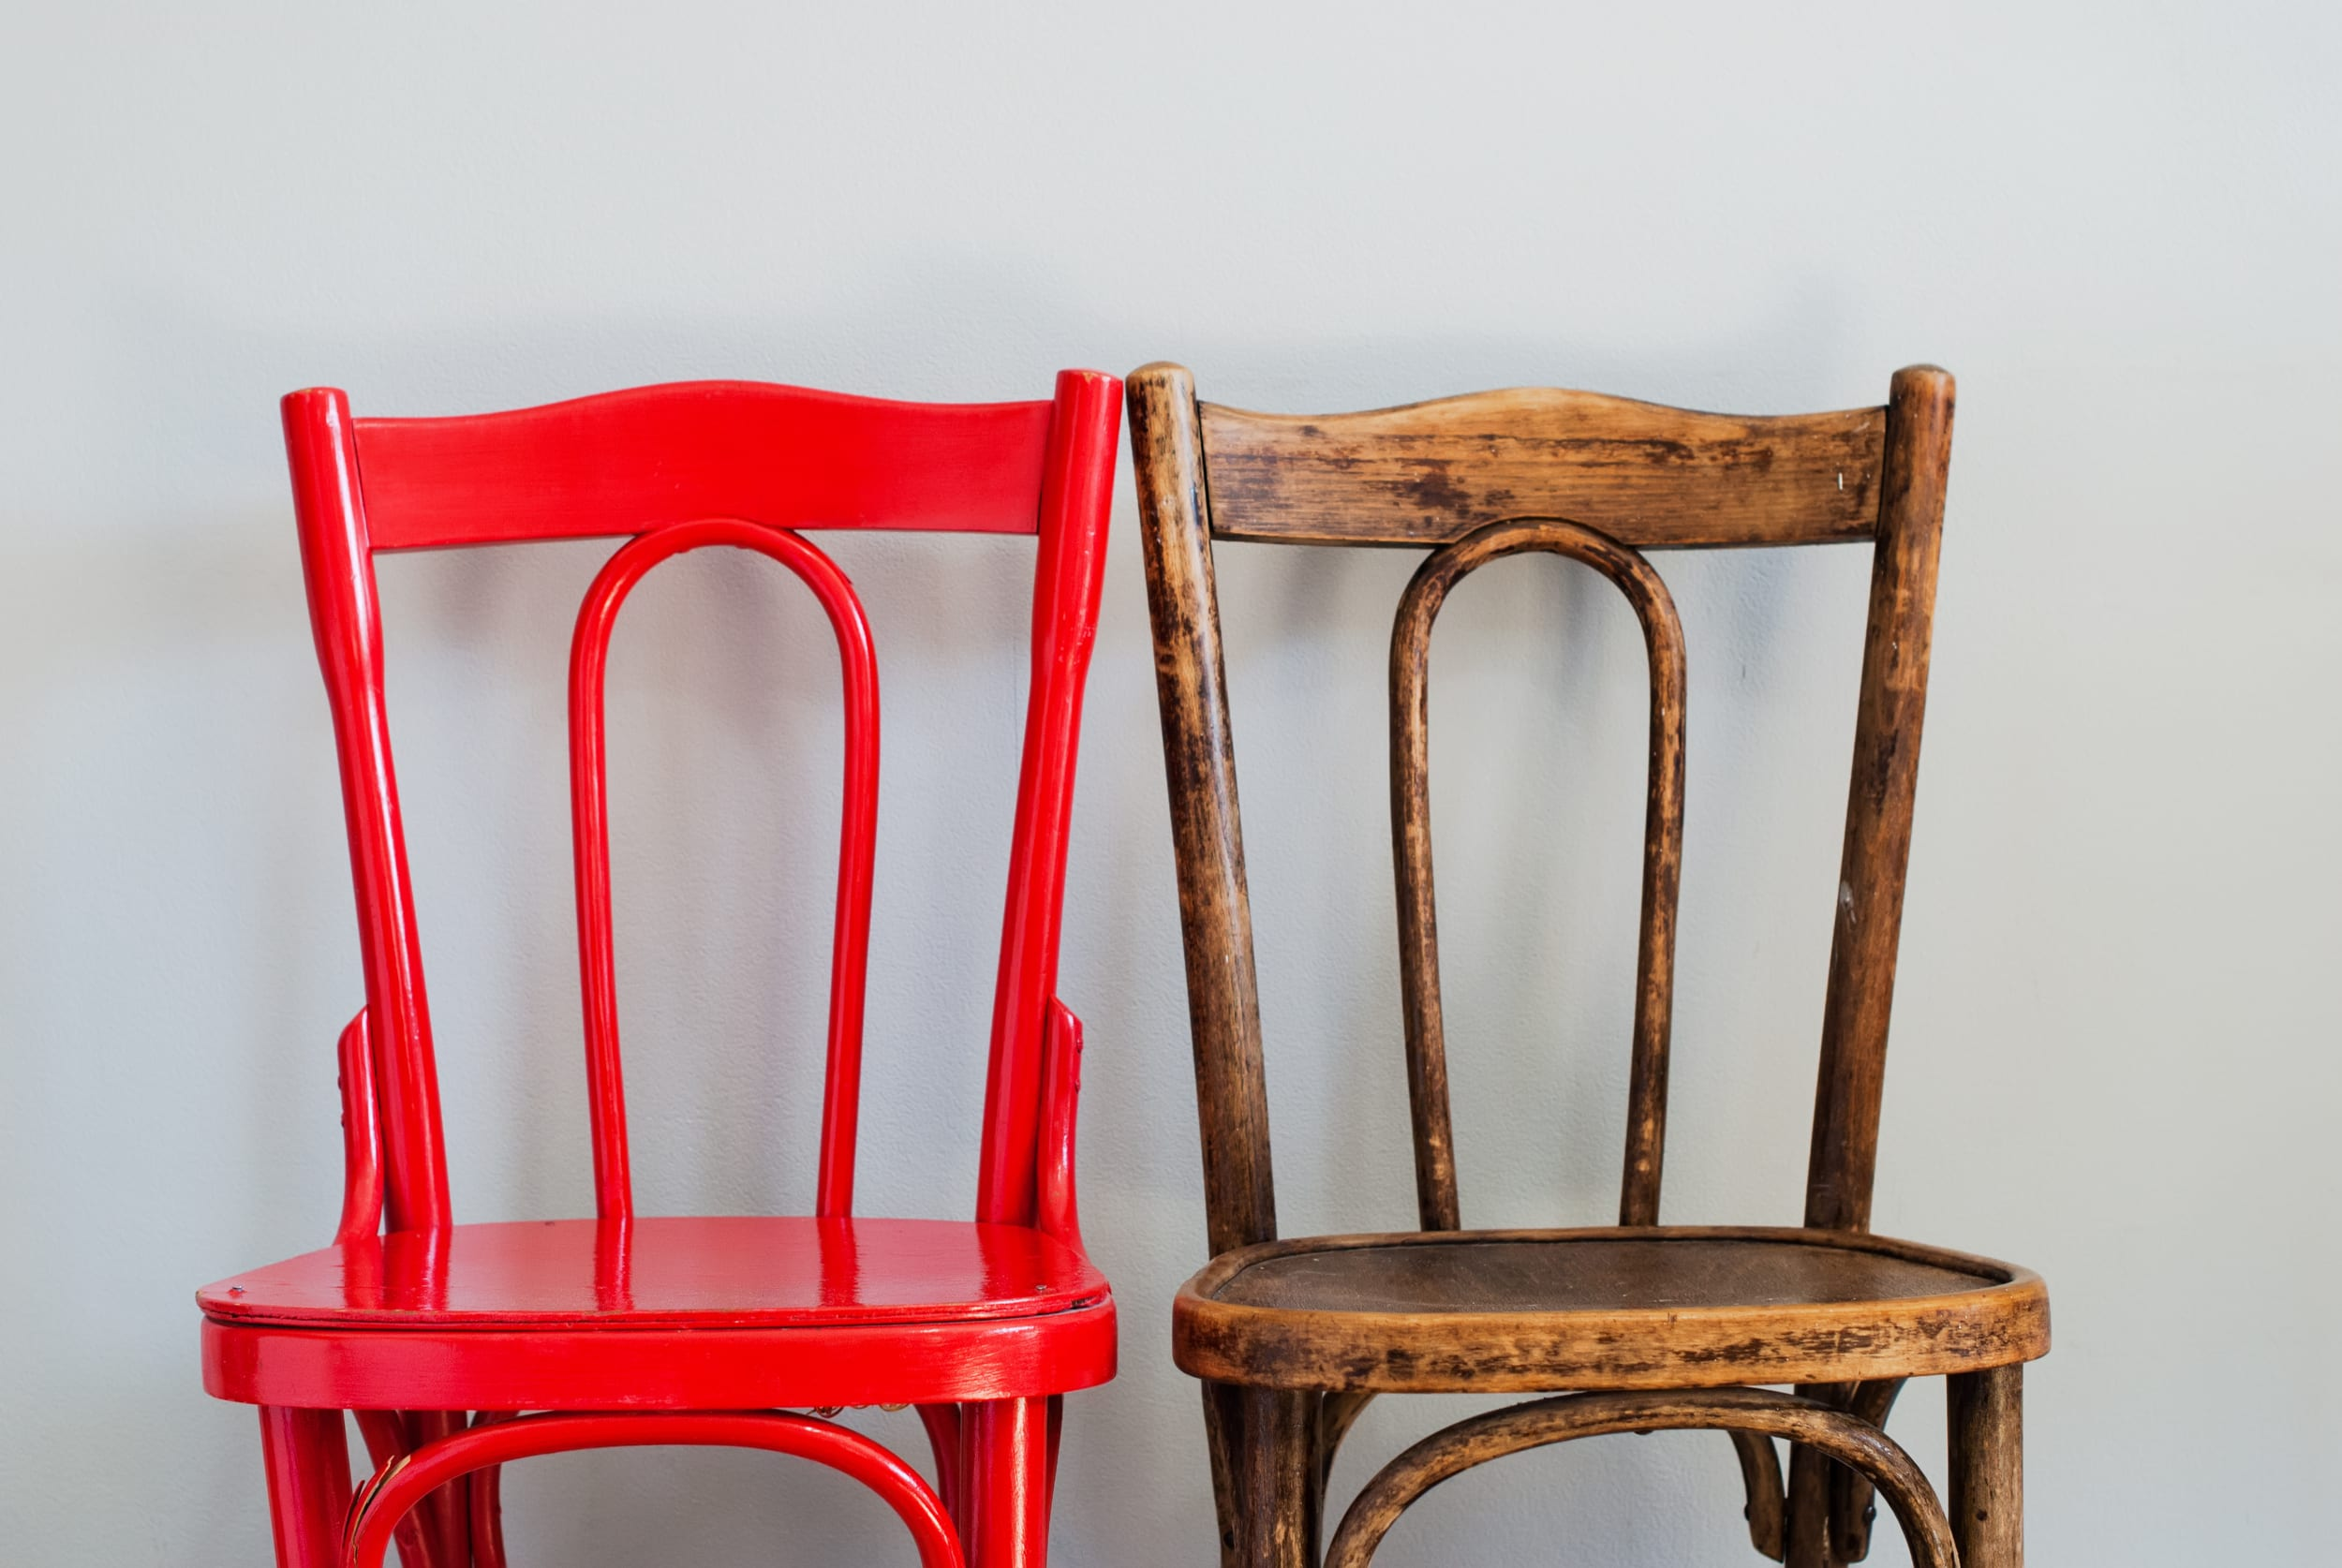 5 Ways to Get Rid of Your Furniture When It's Not Selling